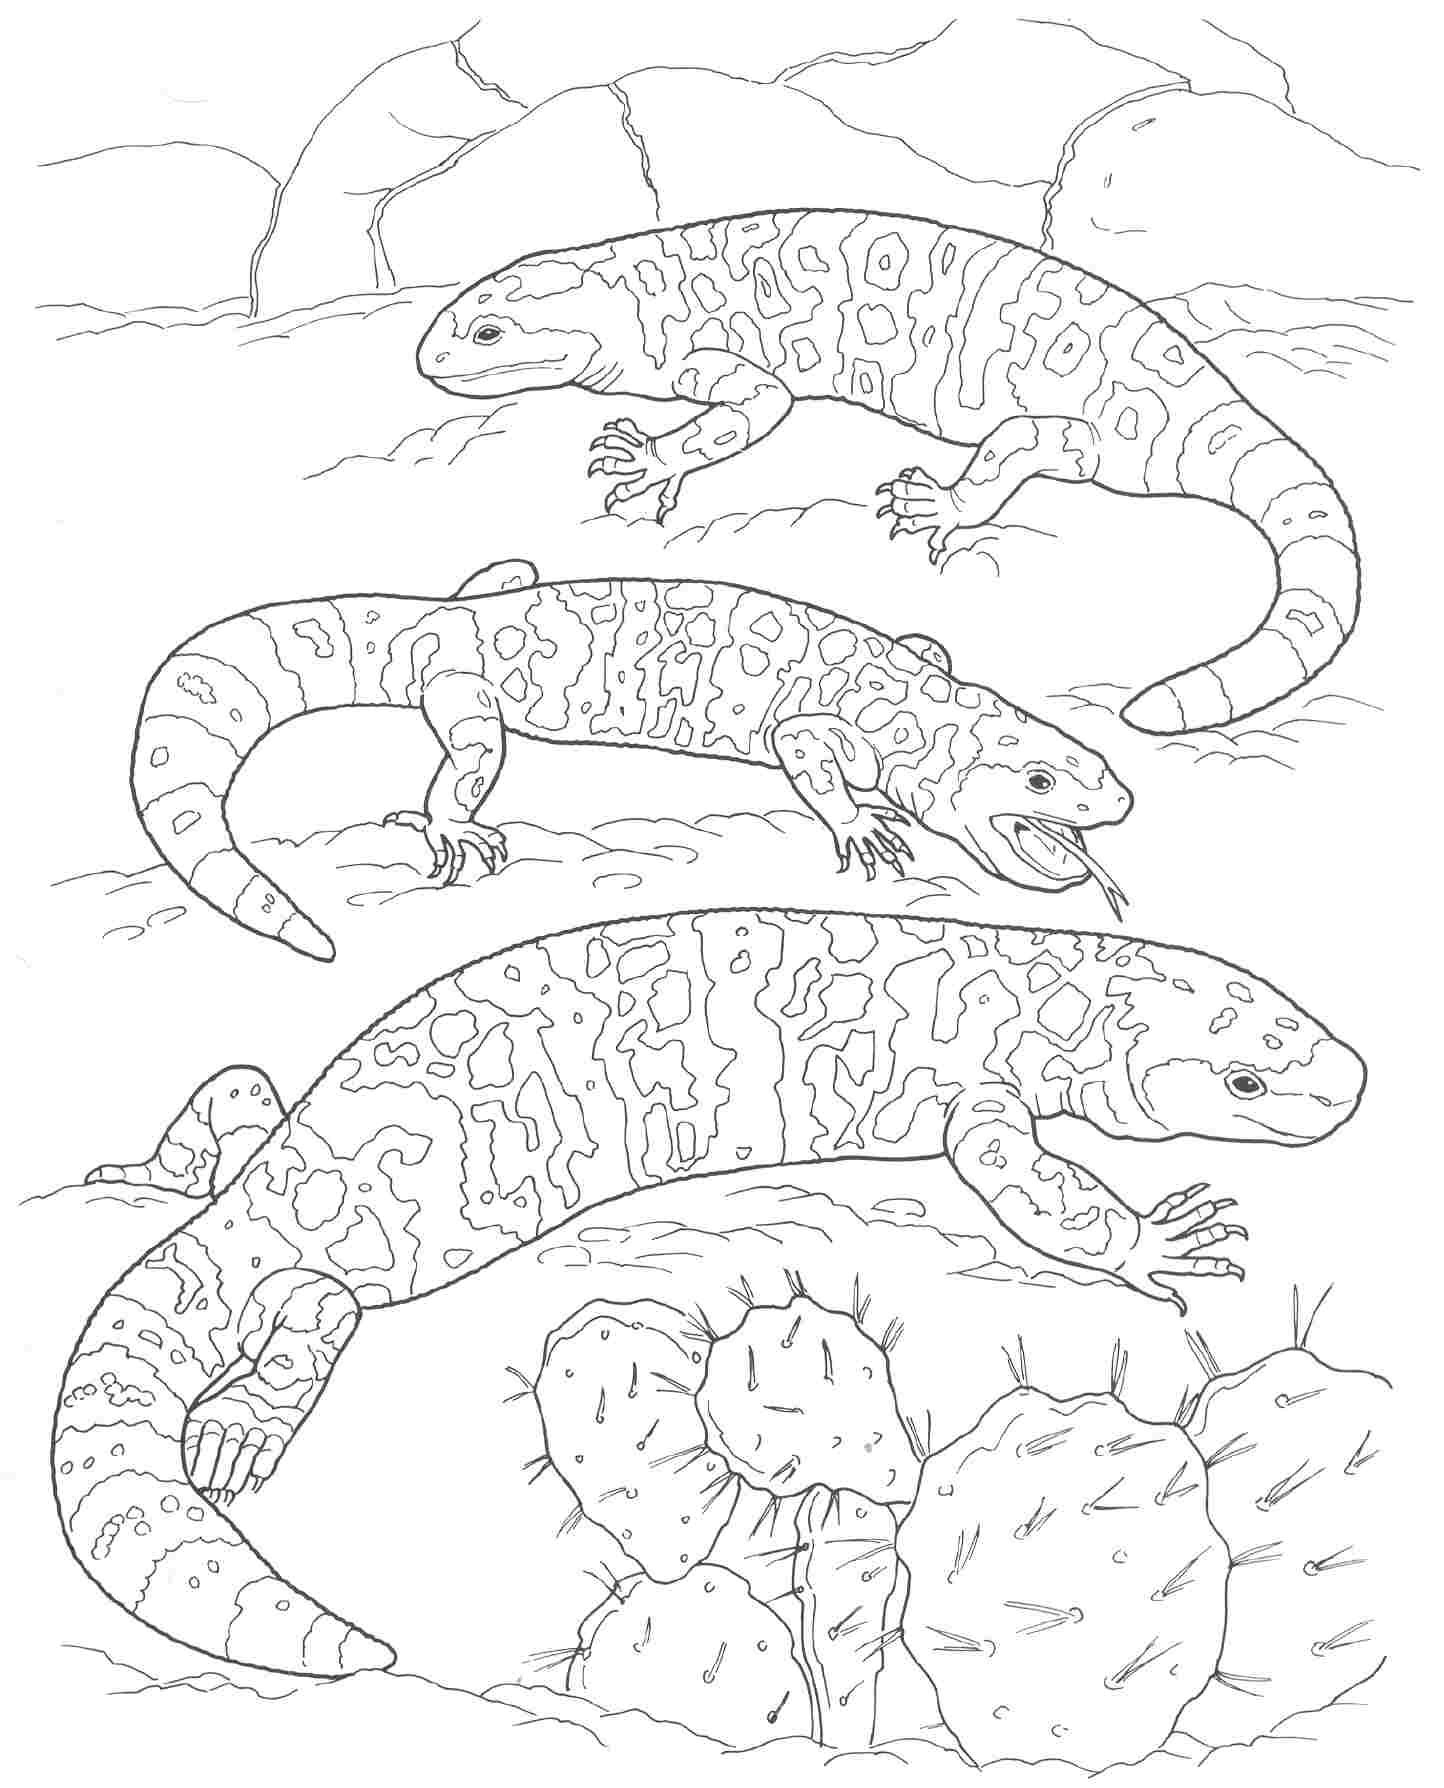 Coloring Worksheet Of Desert Plants Coloring Pages Desert Animals Coloring Pages